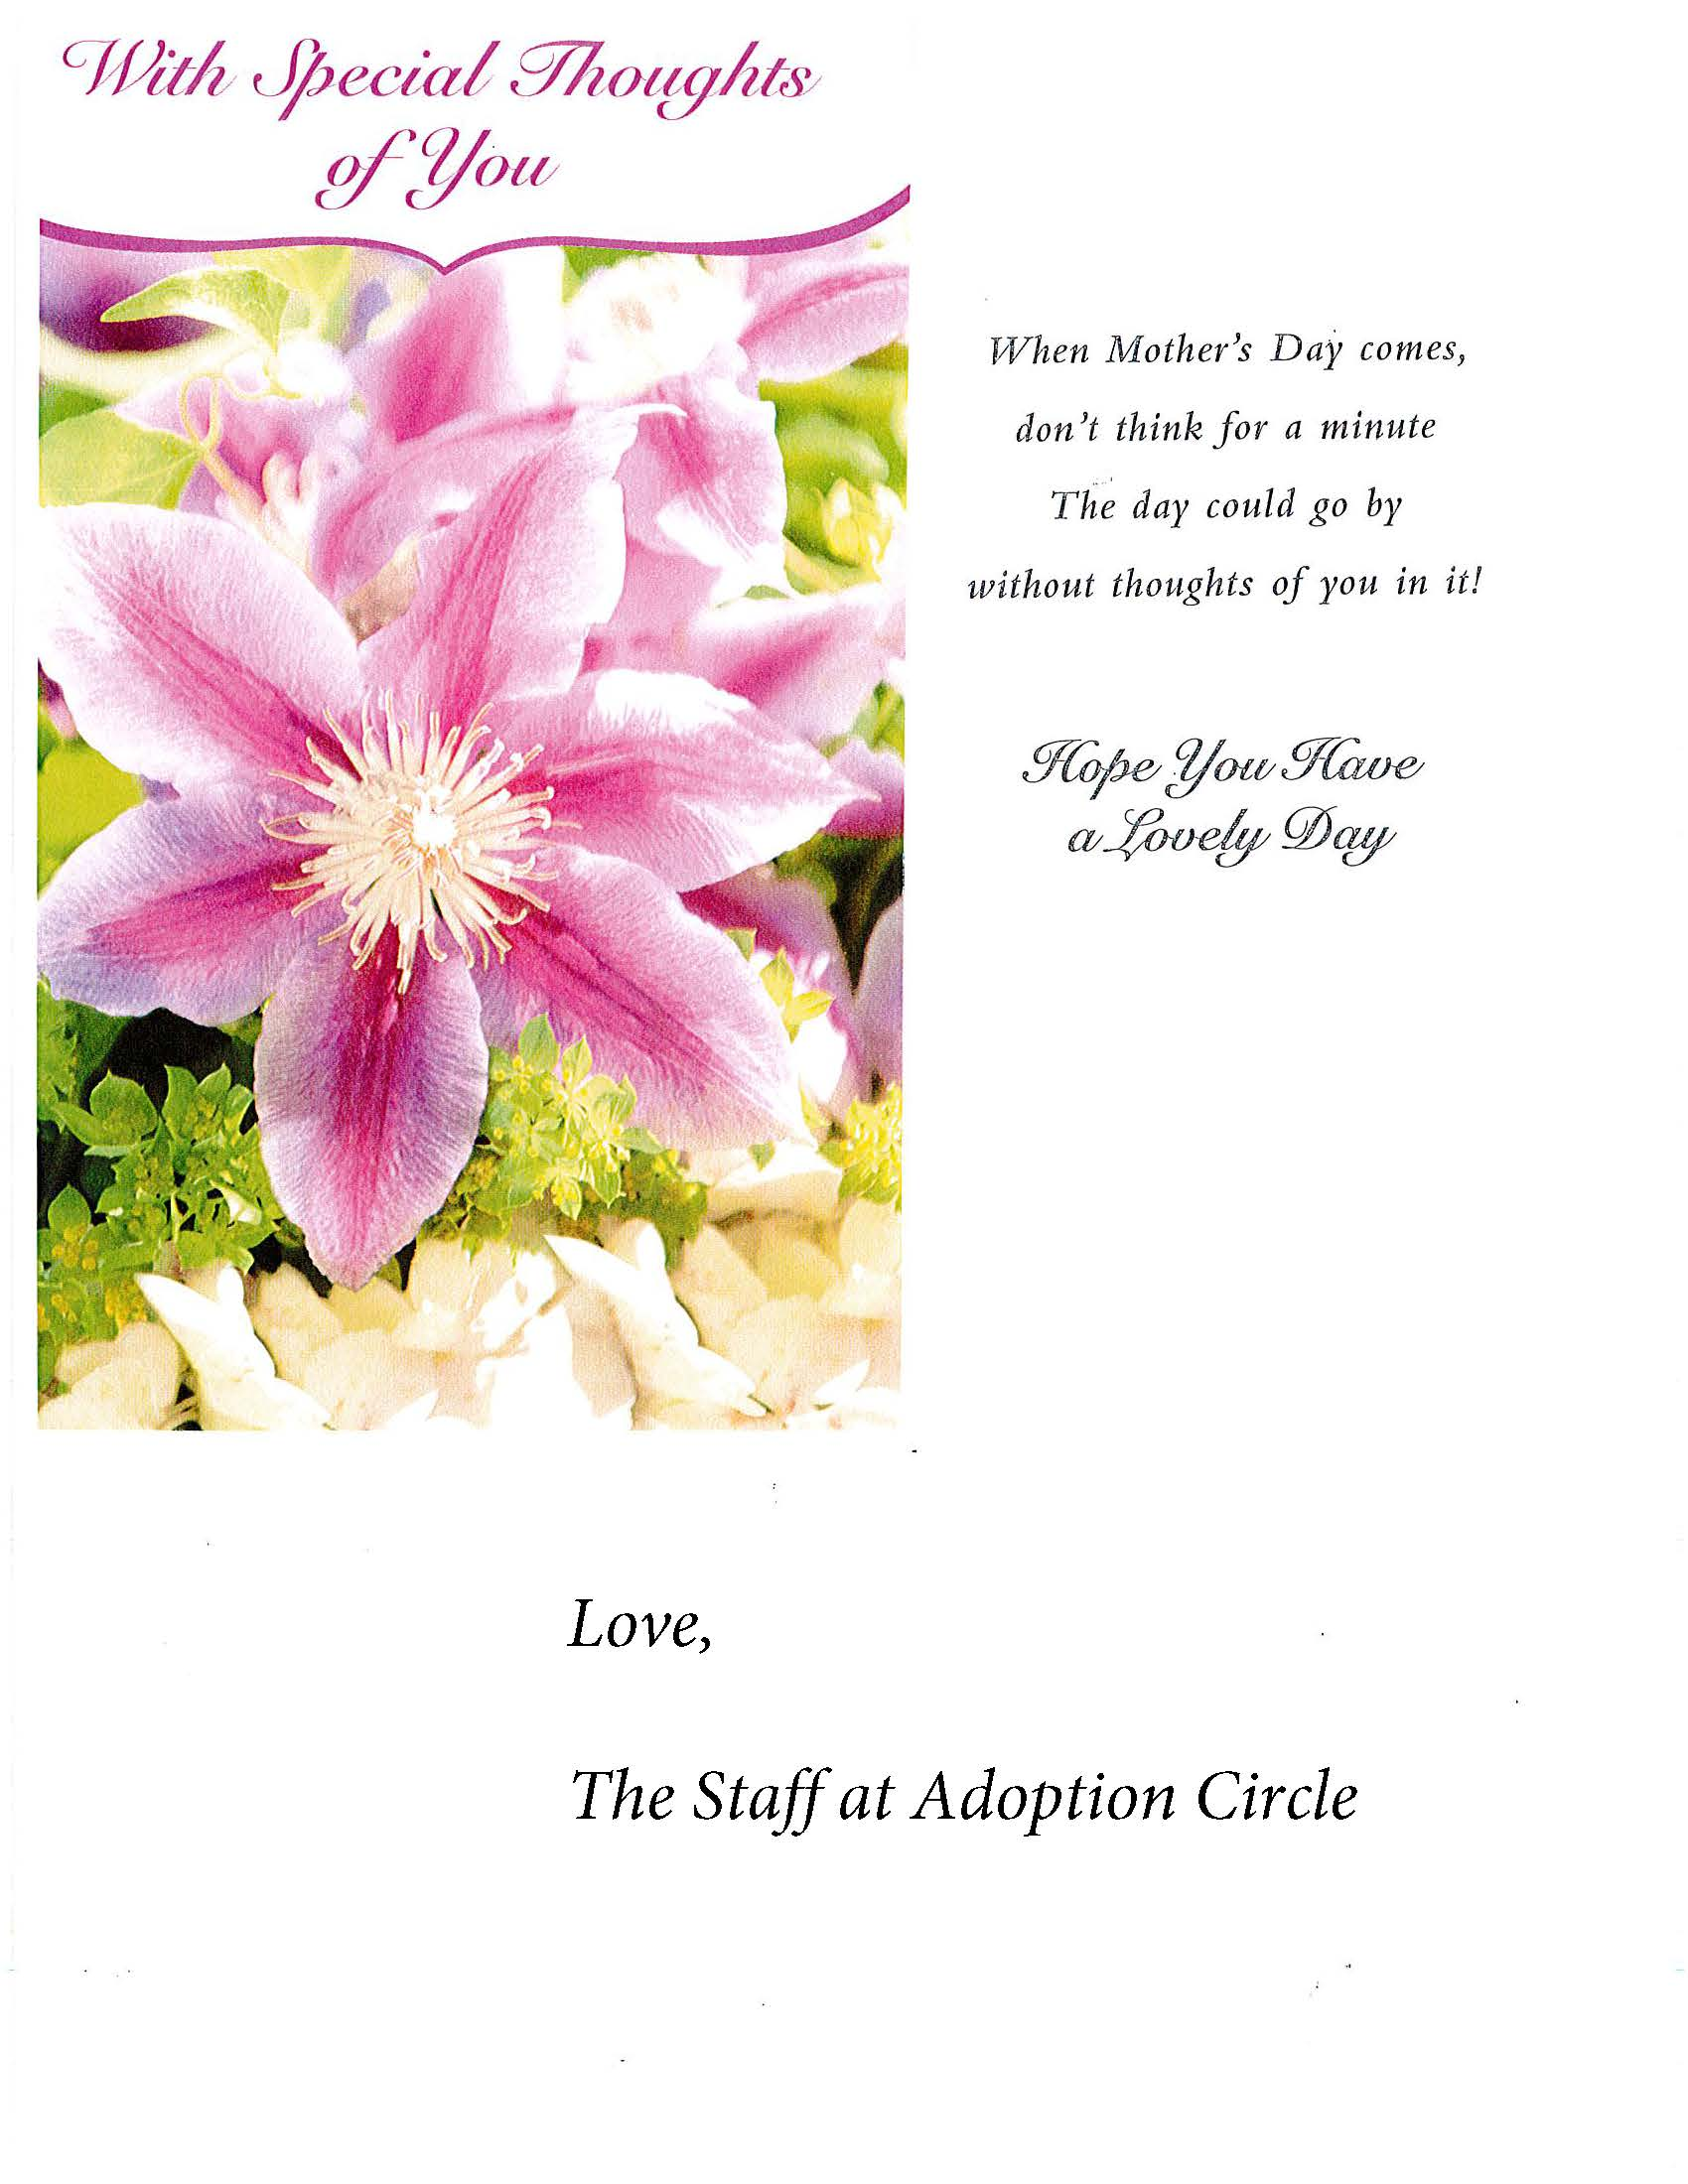 Happy Mother's Day from your friends at Adoption Circle